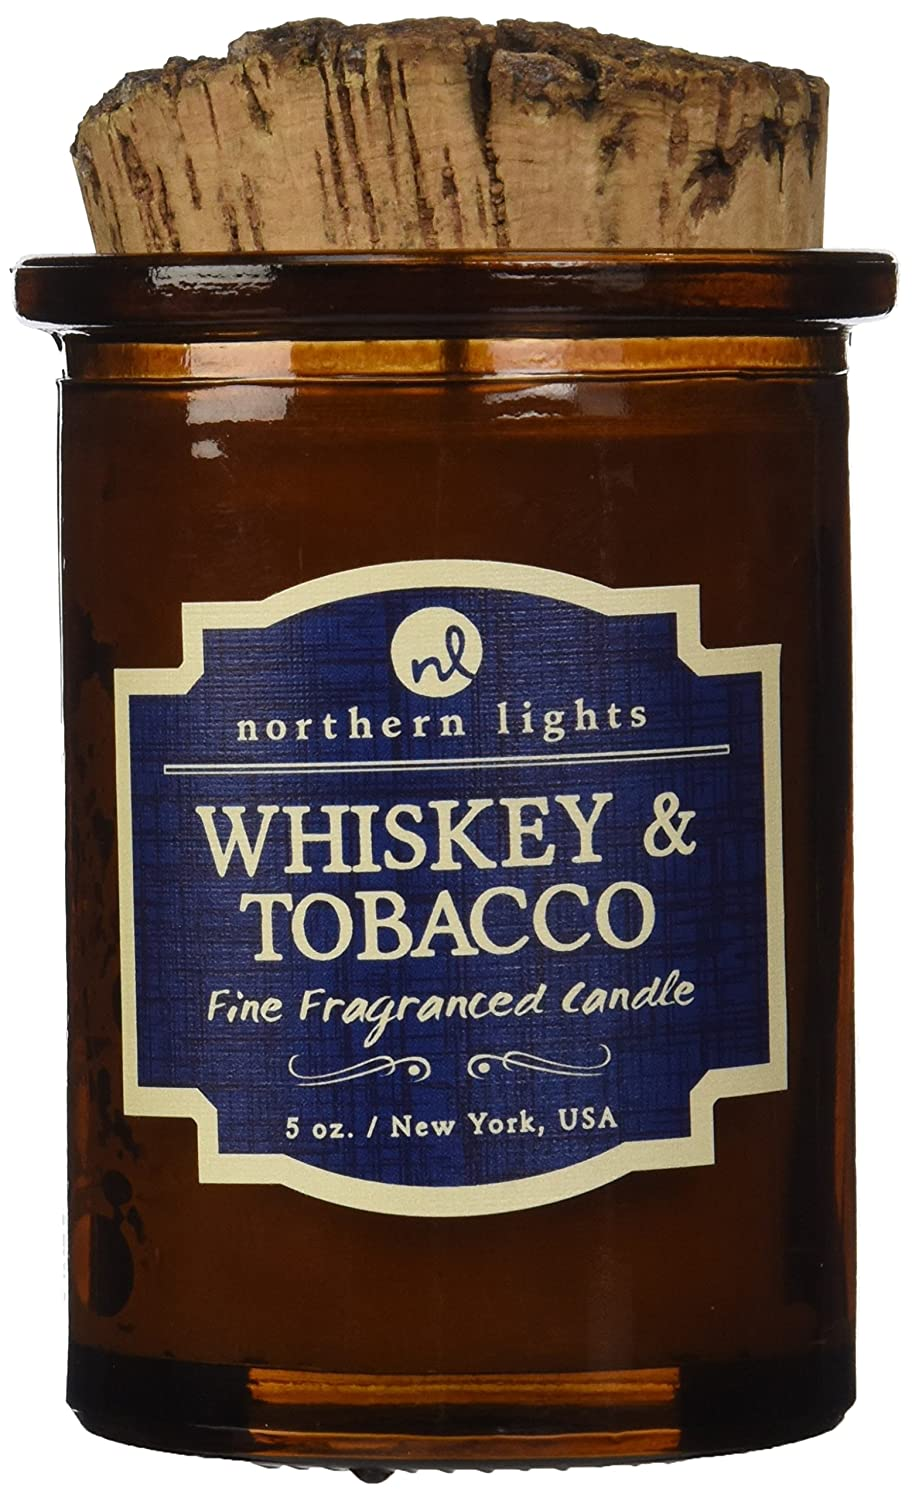 Northern Lights Candles 52601 Spirit Jar Candle, Whiskey & Tobacco, 5 oz